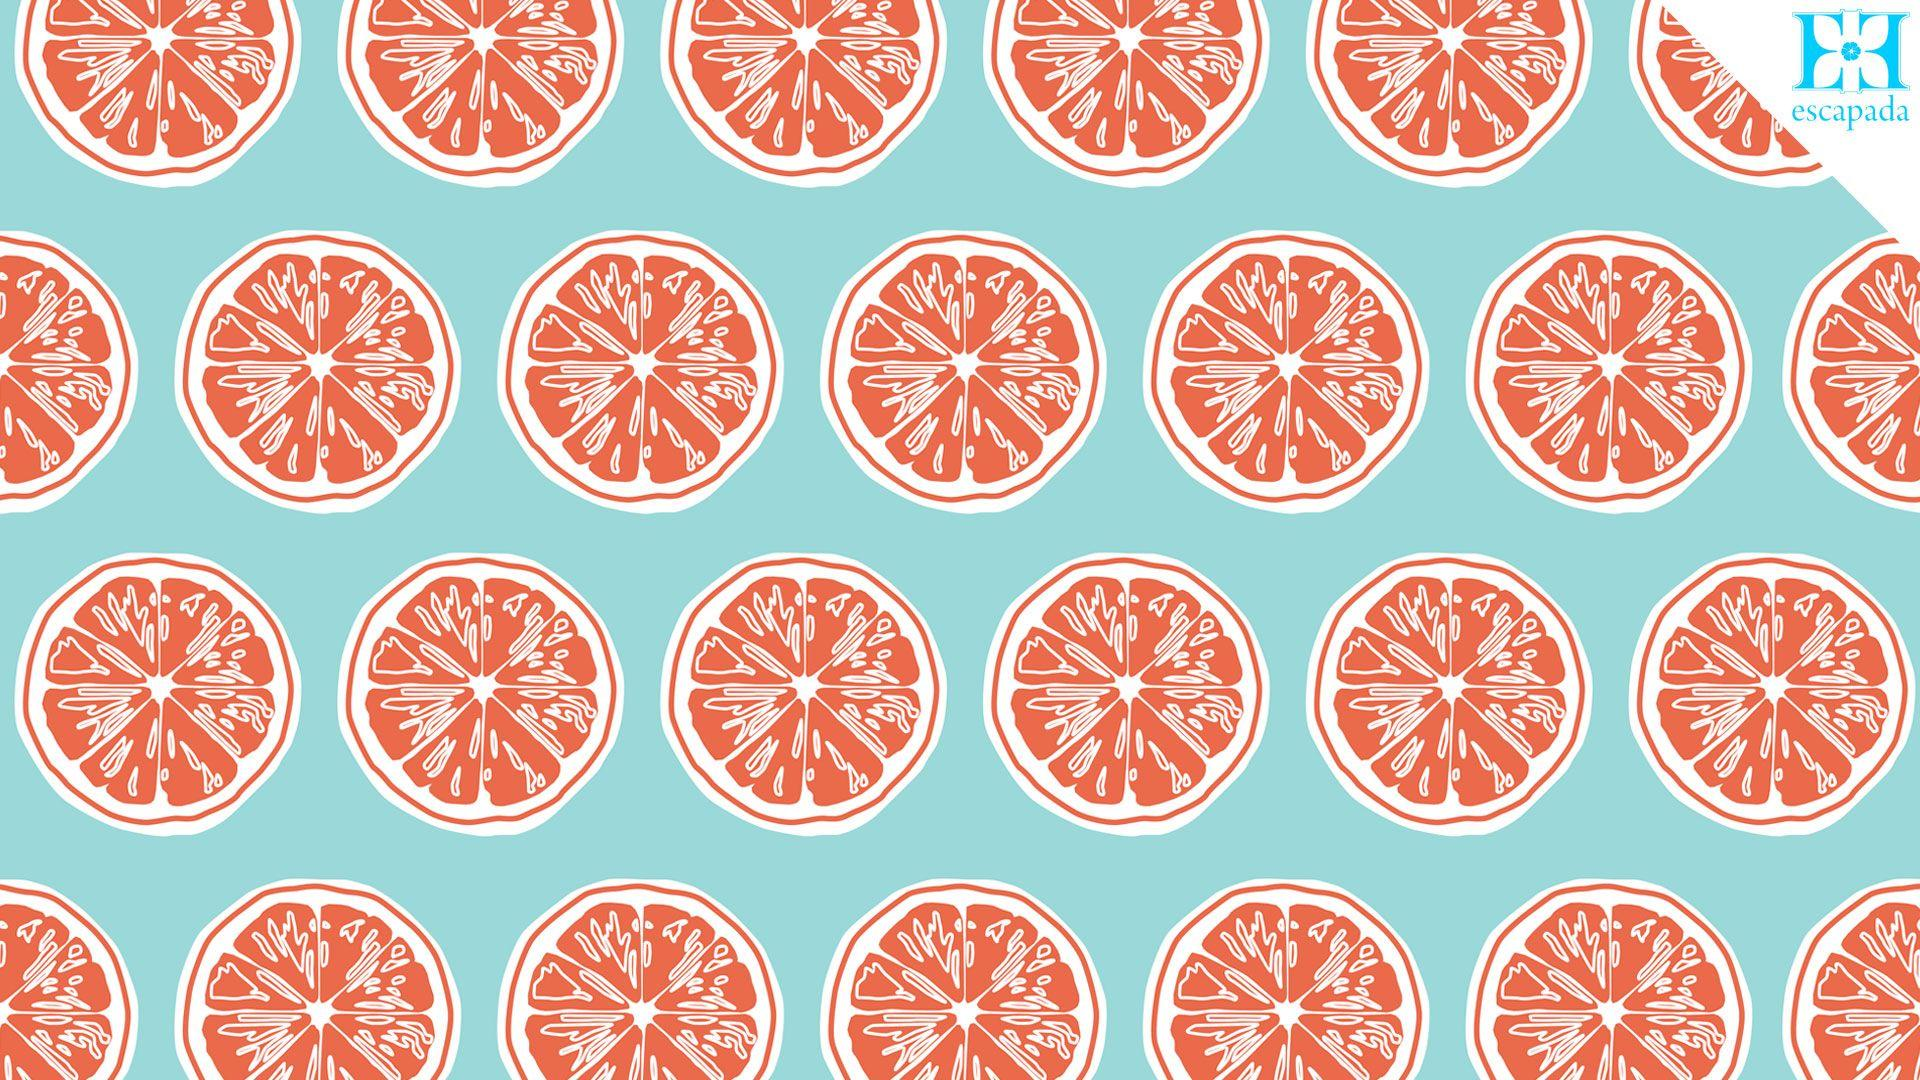 preppy backgrounds for iphone - HD1280×1024